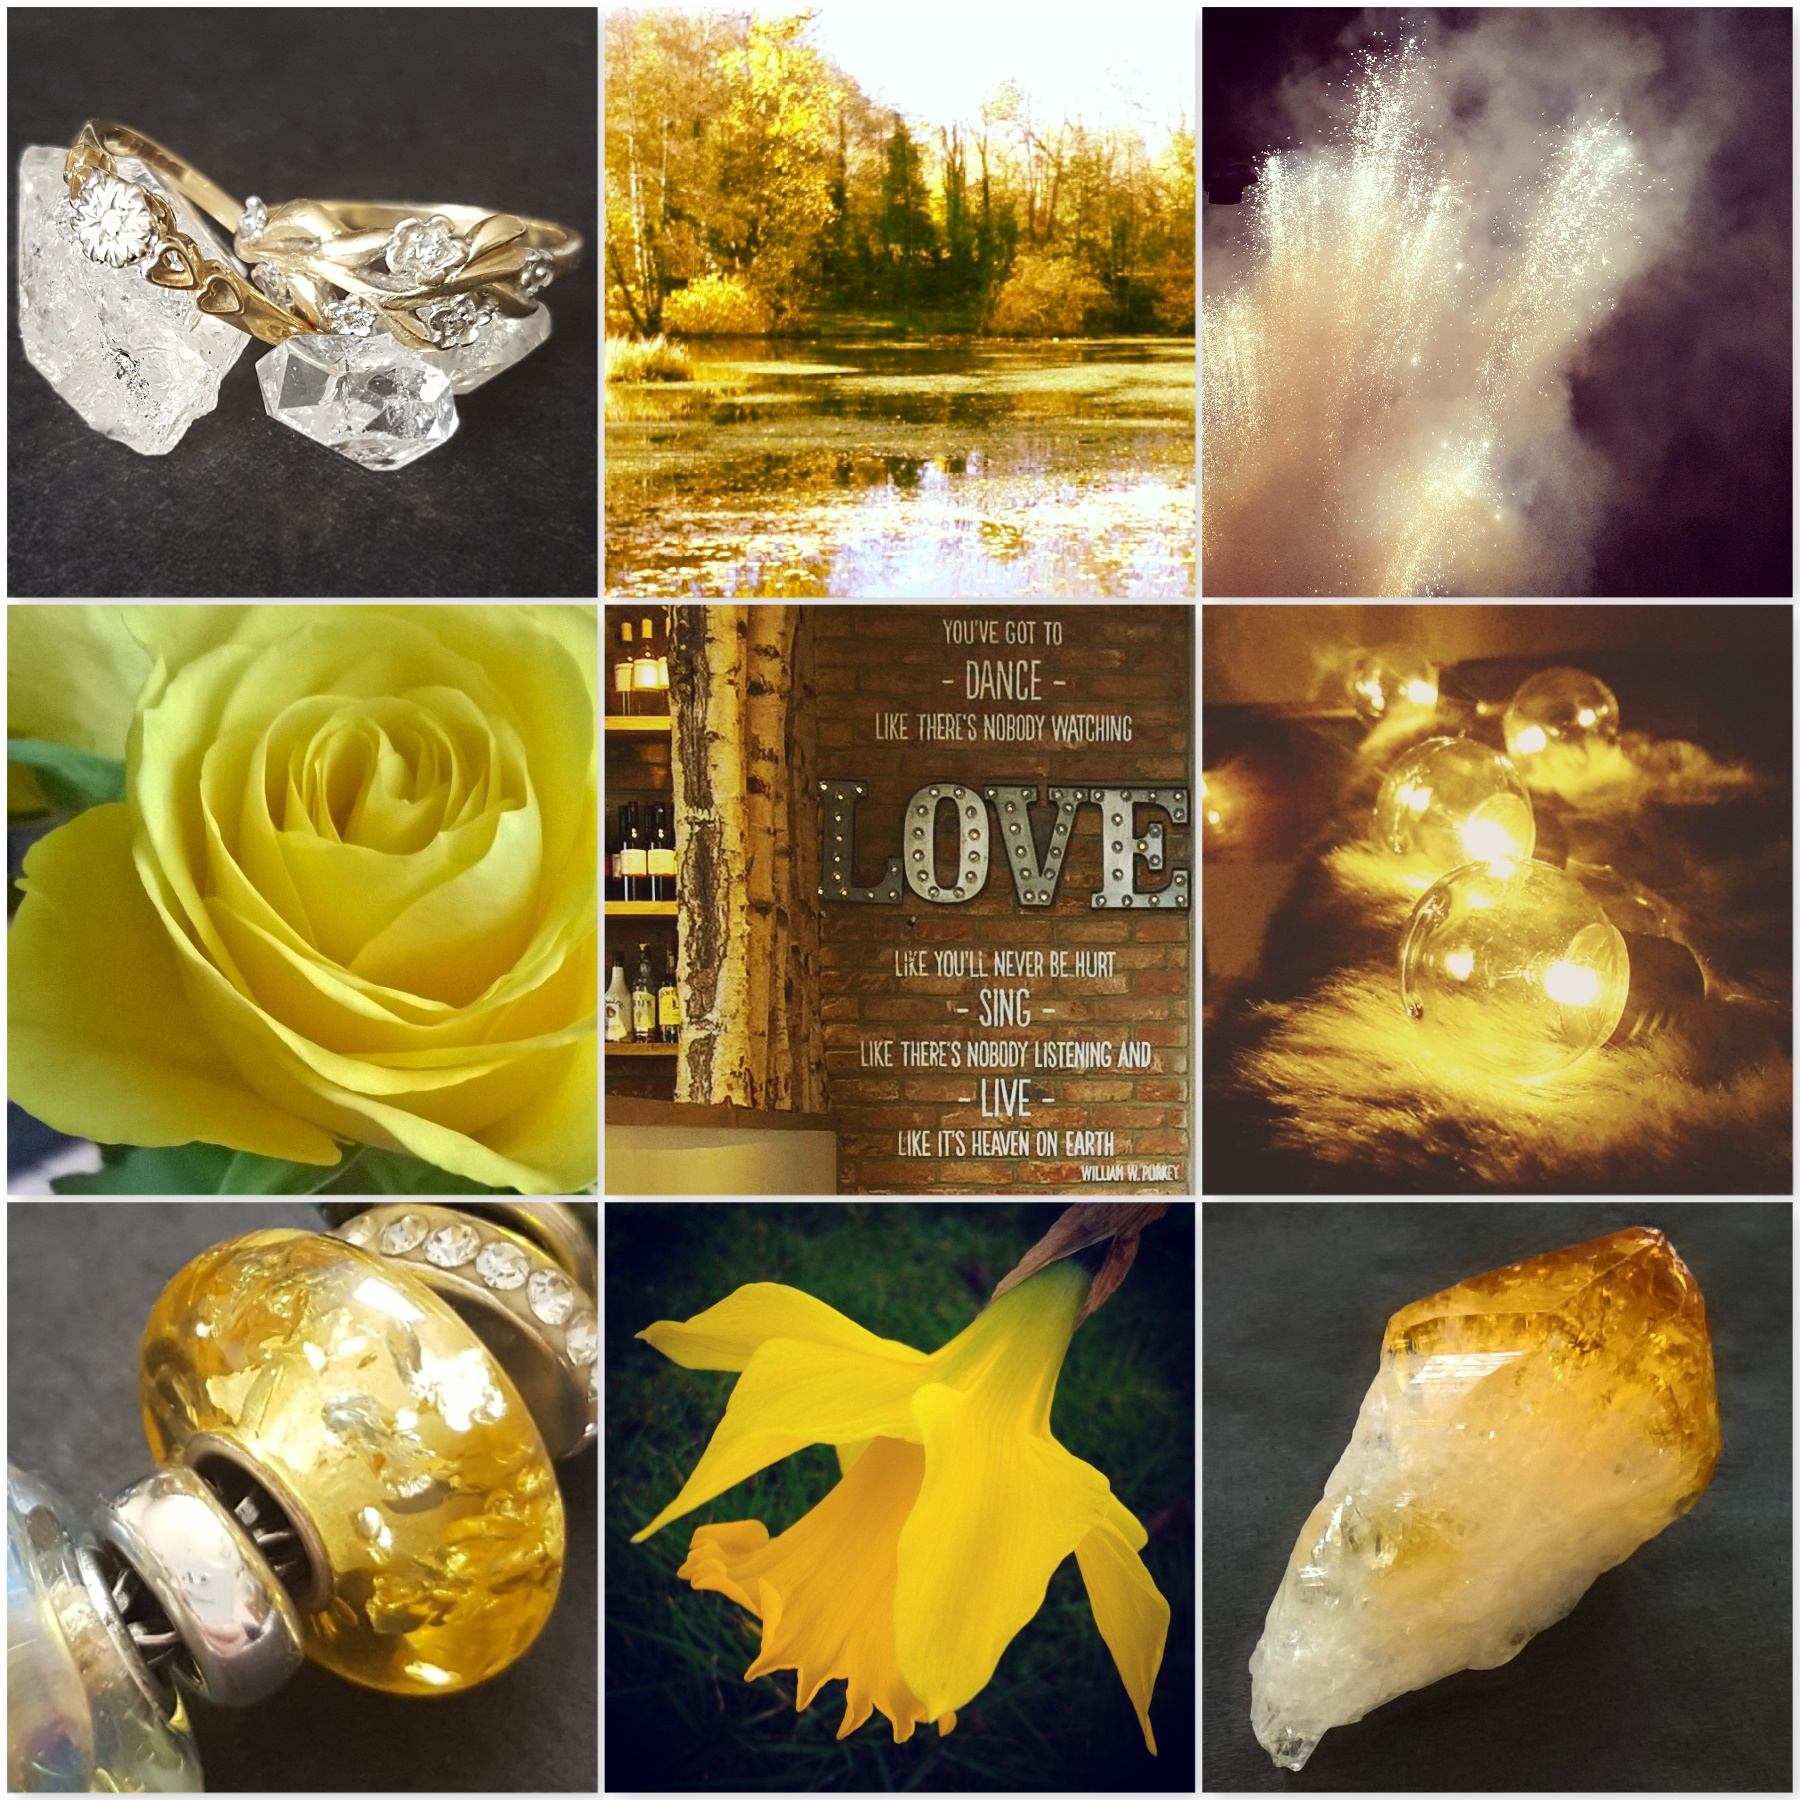 gold photos: gold herkimer diamond jewellery, yellow forest, fireworks, yellow rose, gold wall with Love quote, fairy lights, lemon amber bead, daffodil, citrine stone for The Last Krystallos blog